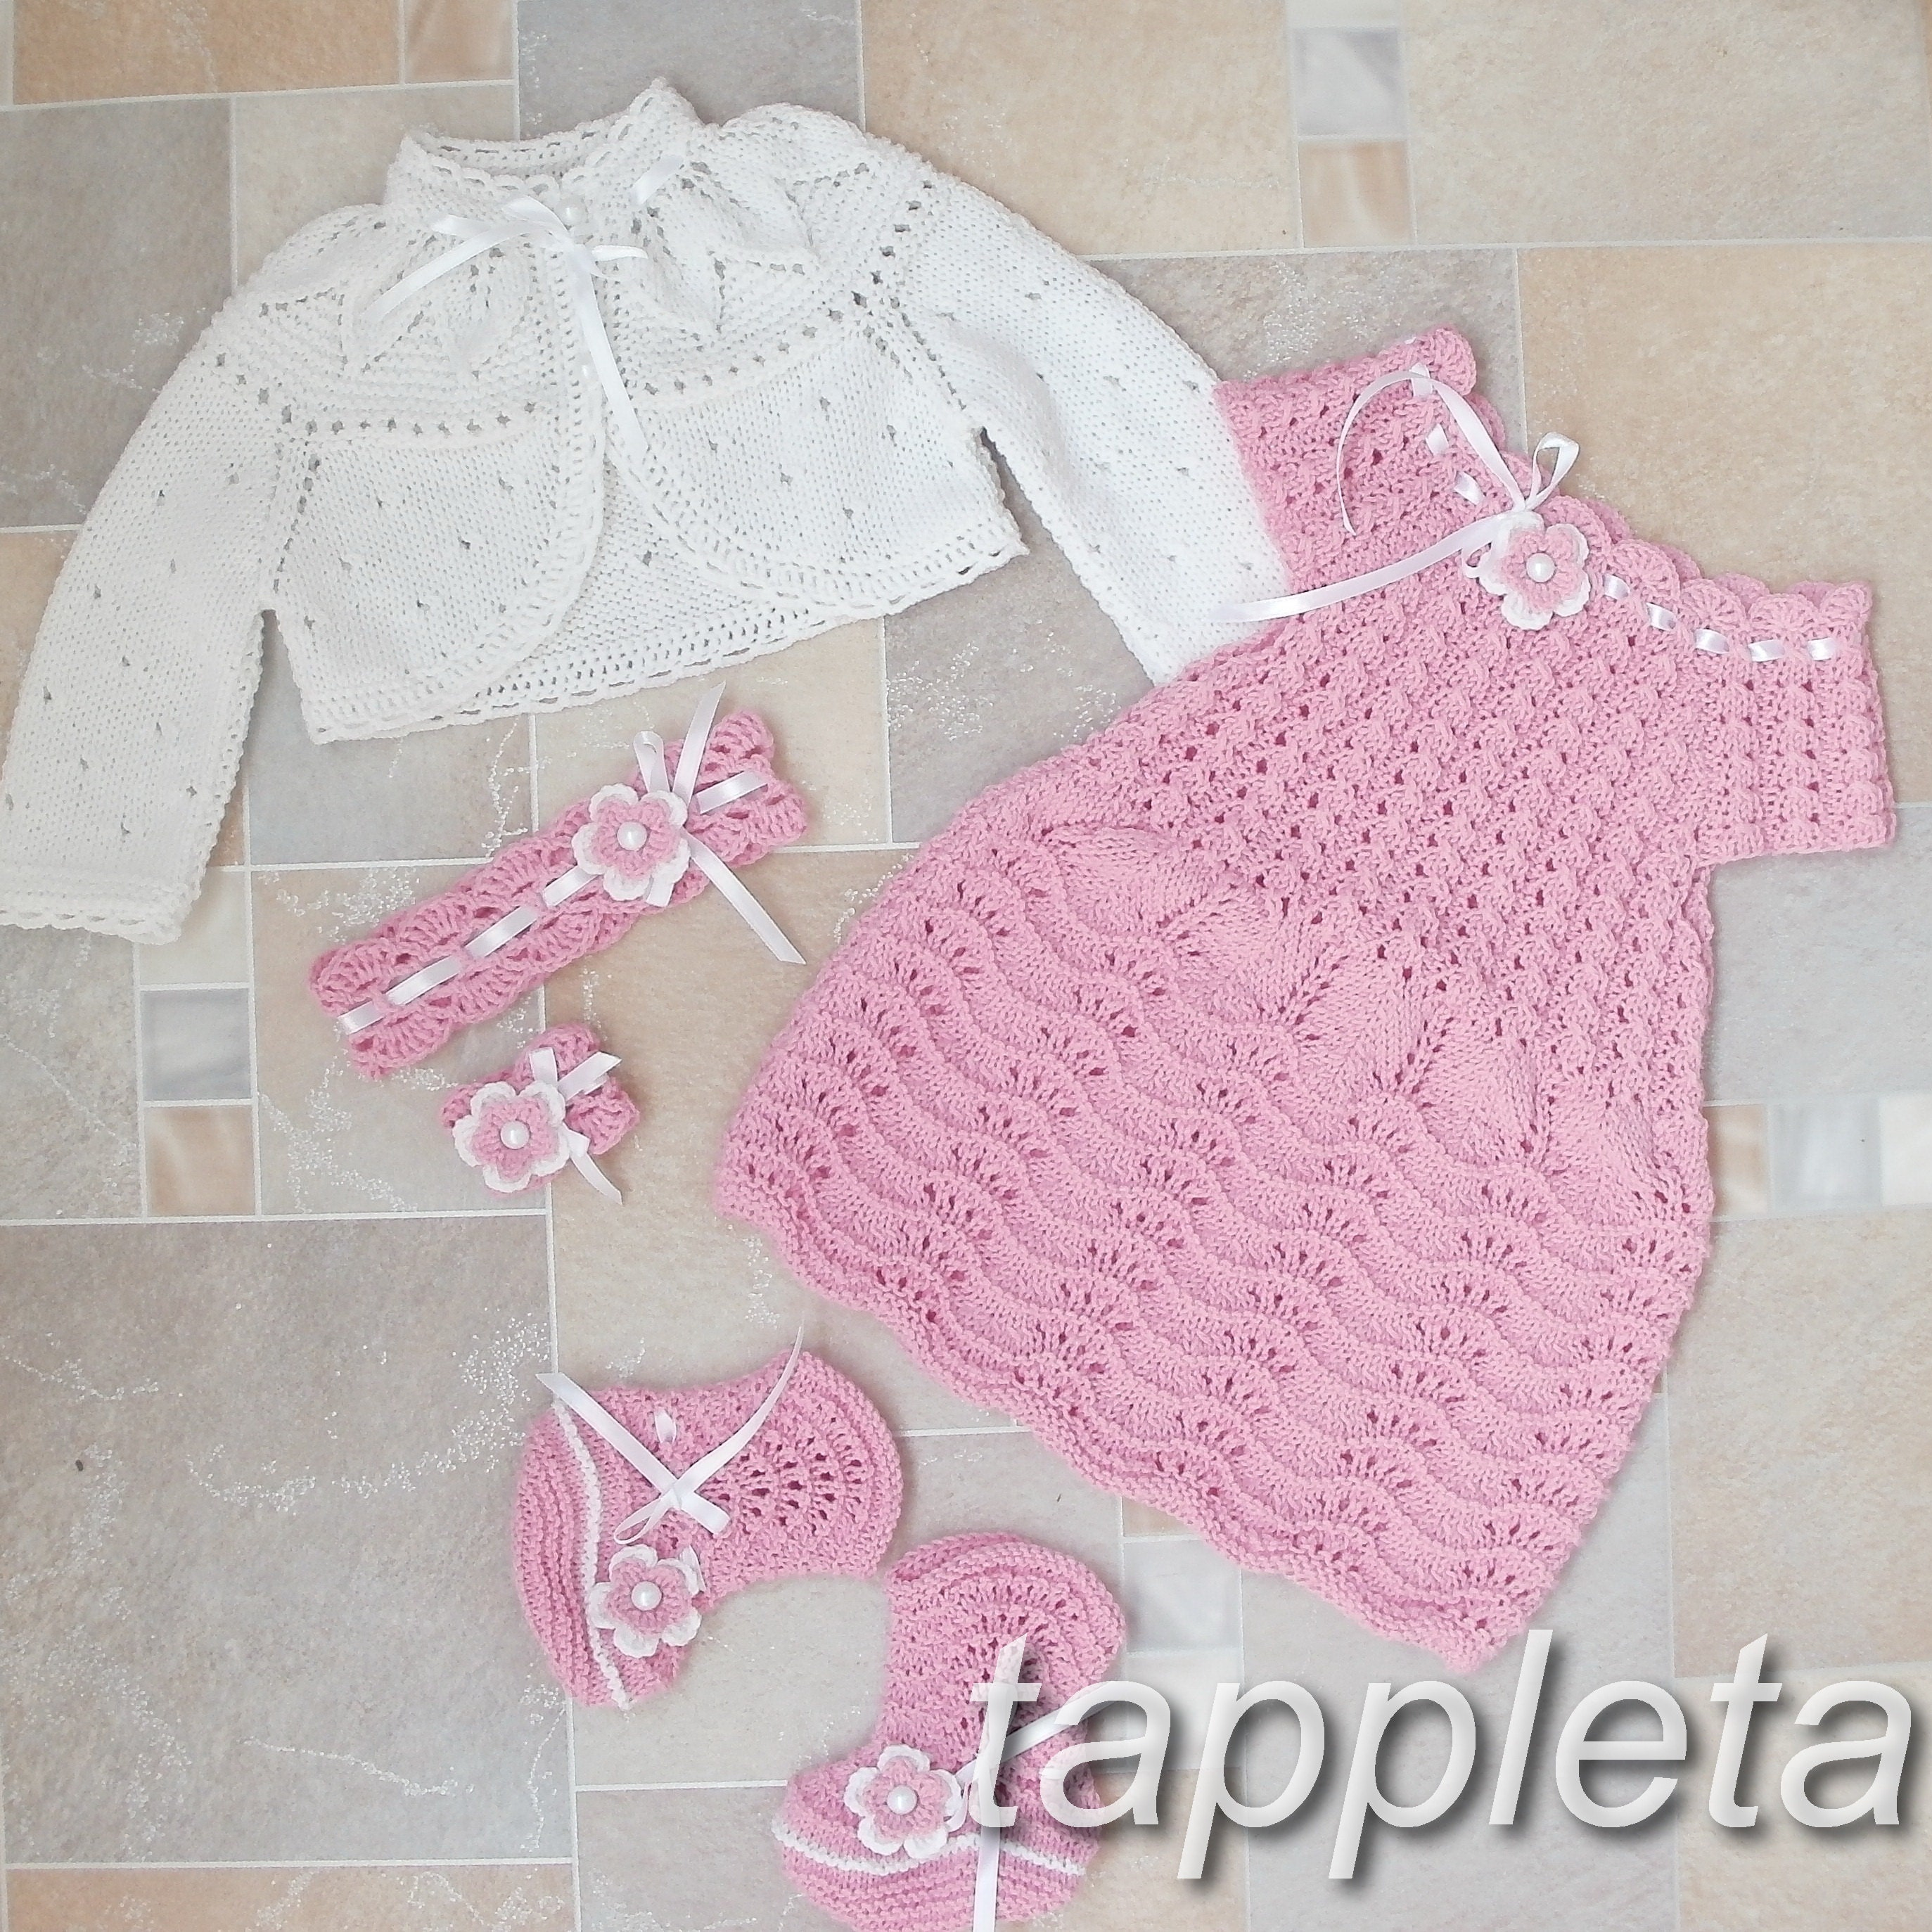 baptism clothes baby knitted dress booties hat shoes by tappleta